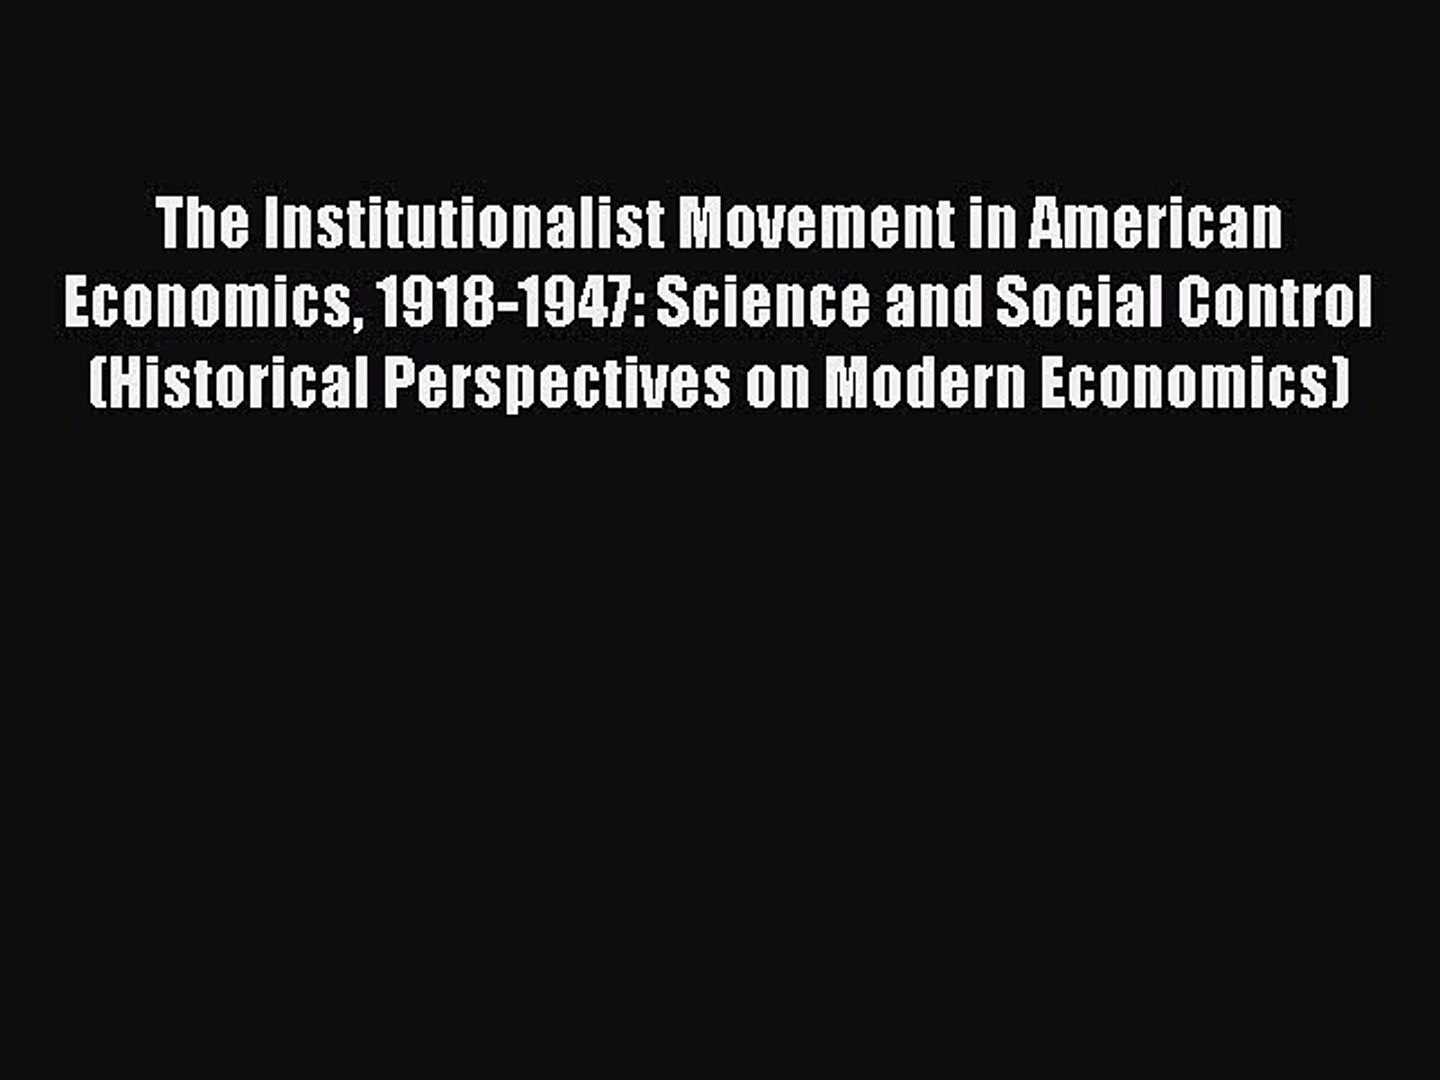 Enjoyed read The Institutionalist Movement in American Economics 1918-1947: Science and Social